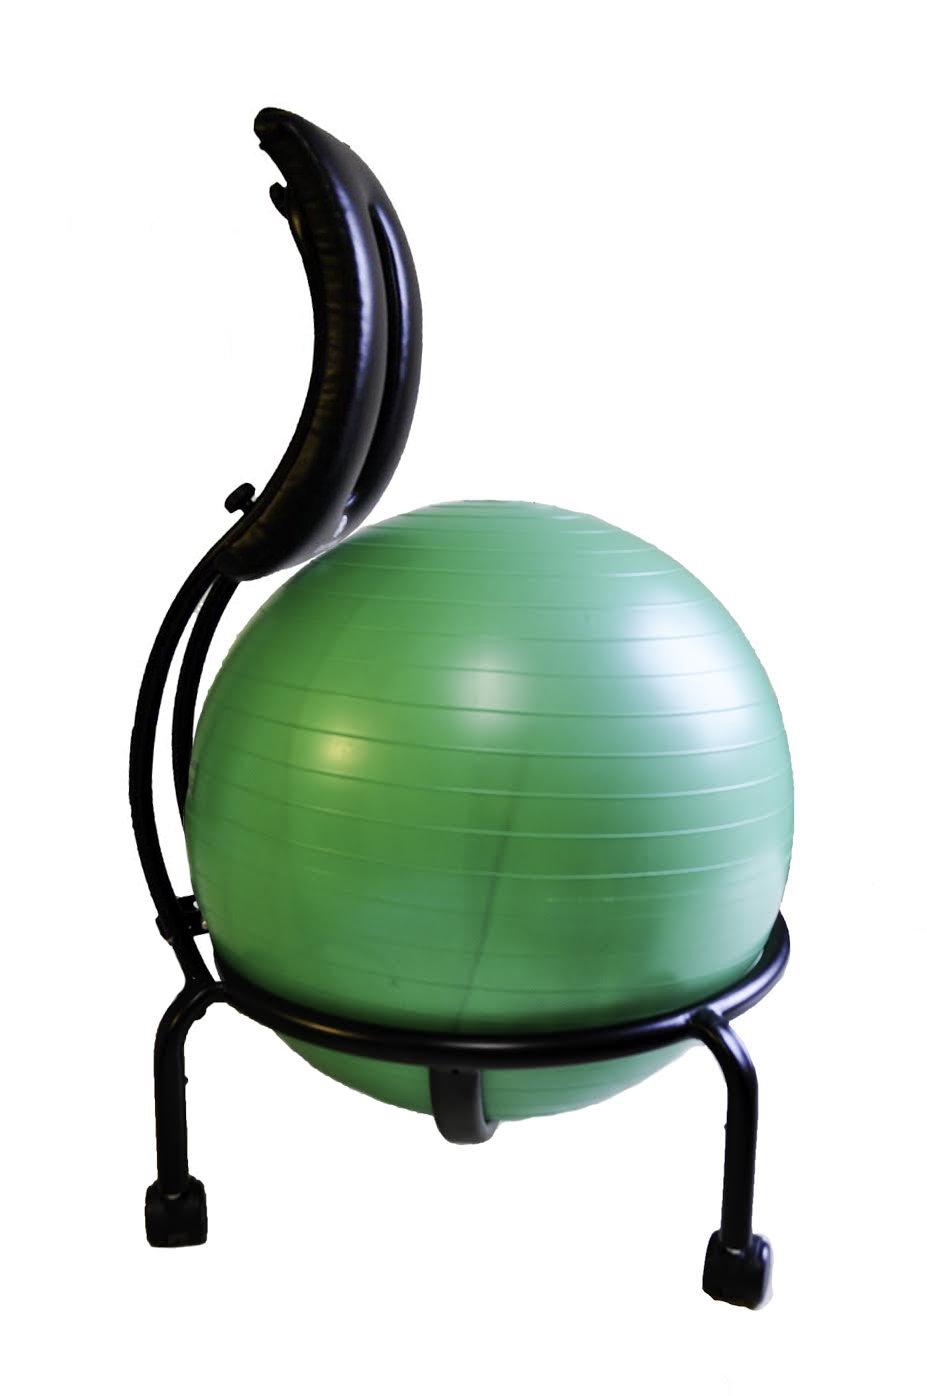 Health Mark Smart Chair Height-Adjustable Exercise Ball Chair, Green (BT20020) by Health Mark (Image #1)